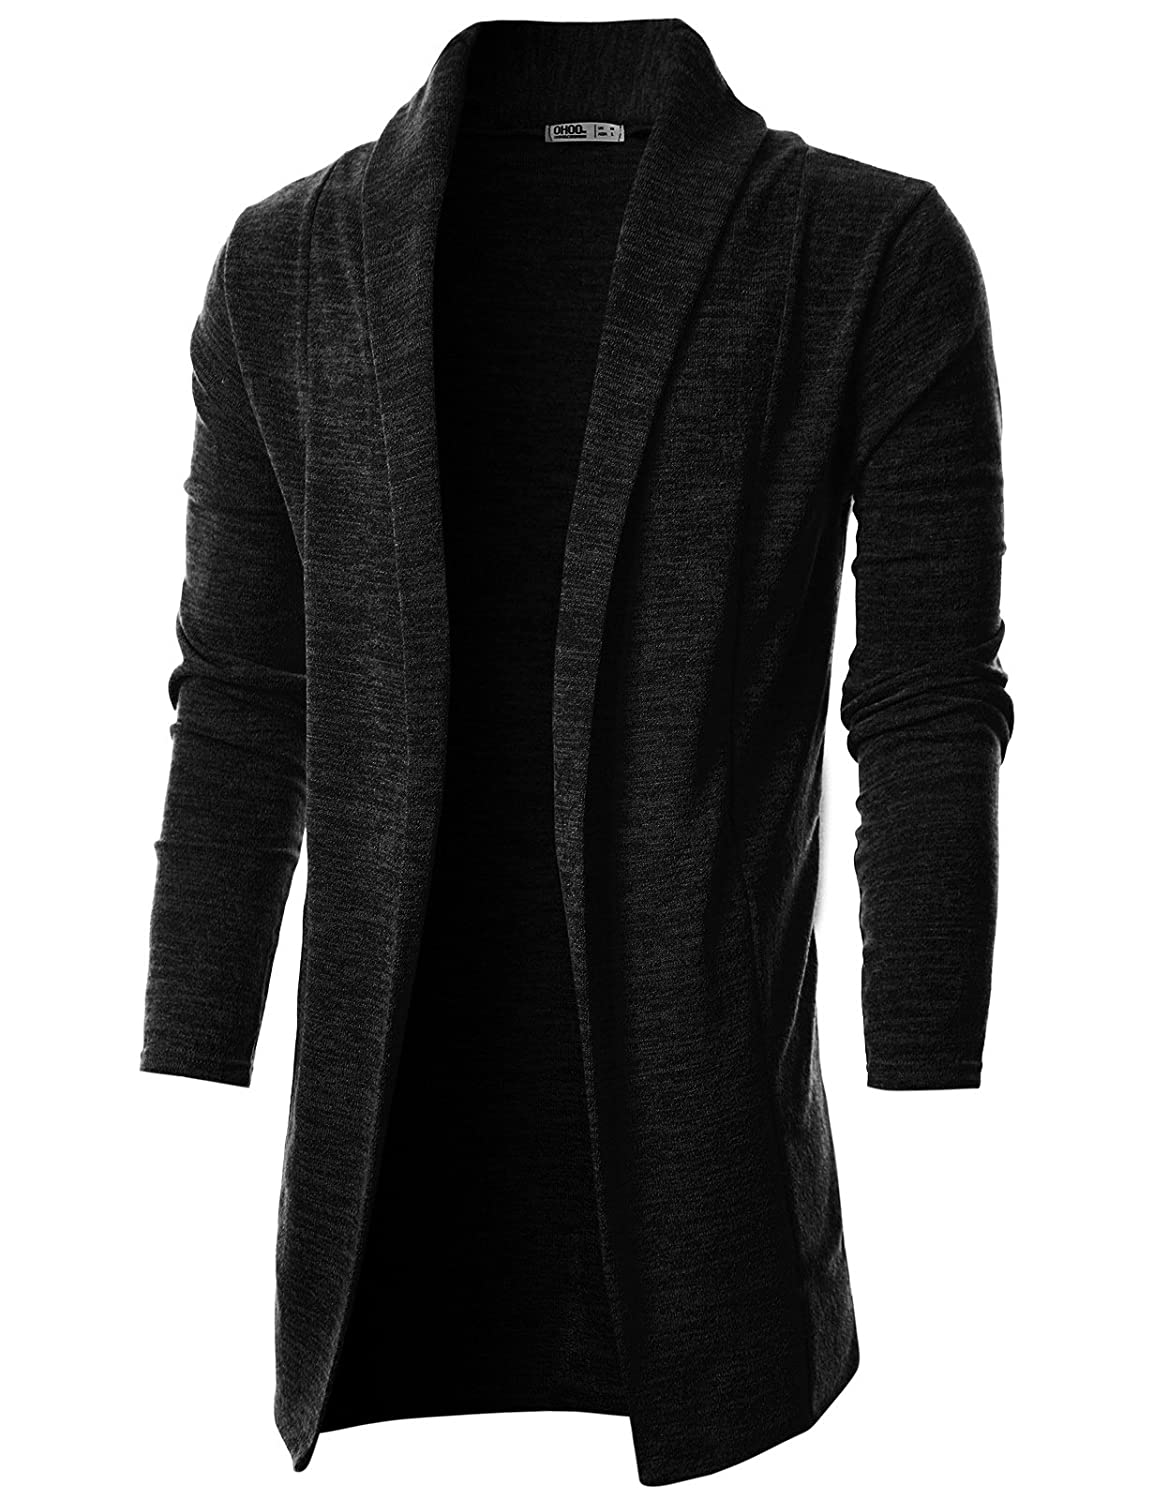 Amazon.com : Mens Fashion Cardigan Long Sleeve Hooded knit Sweater ...